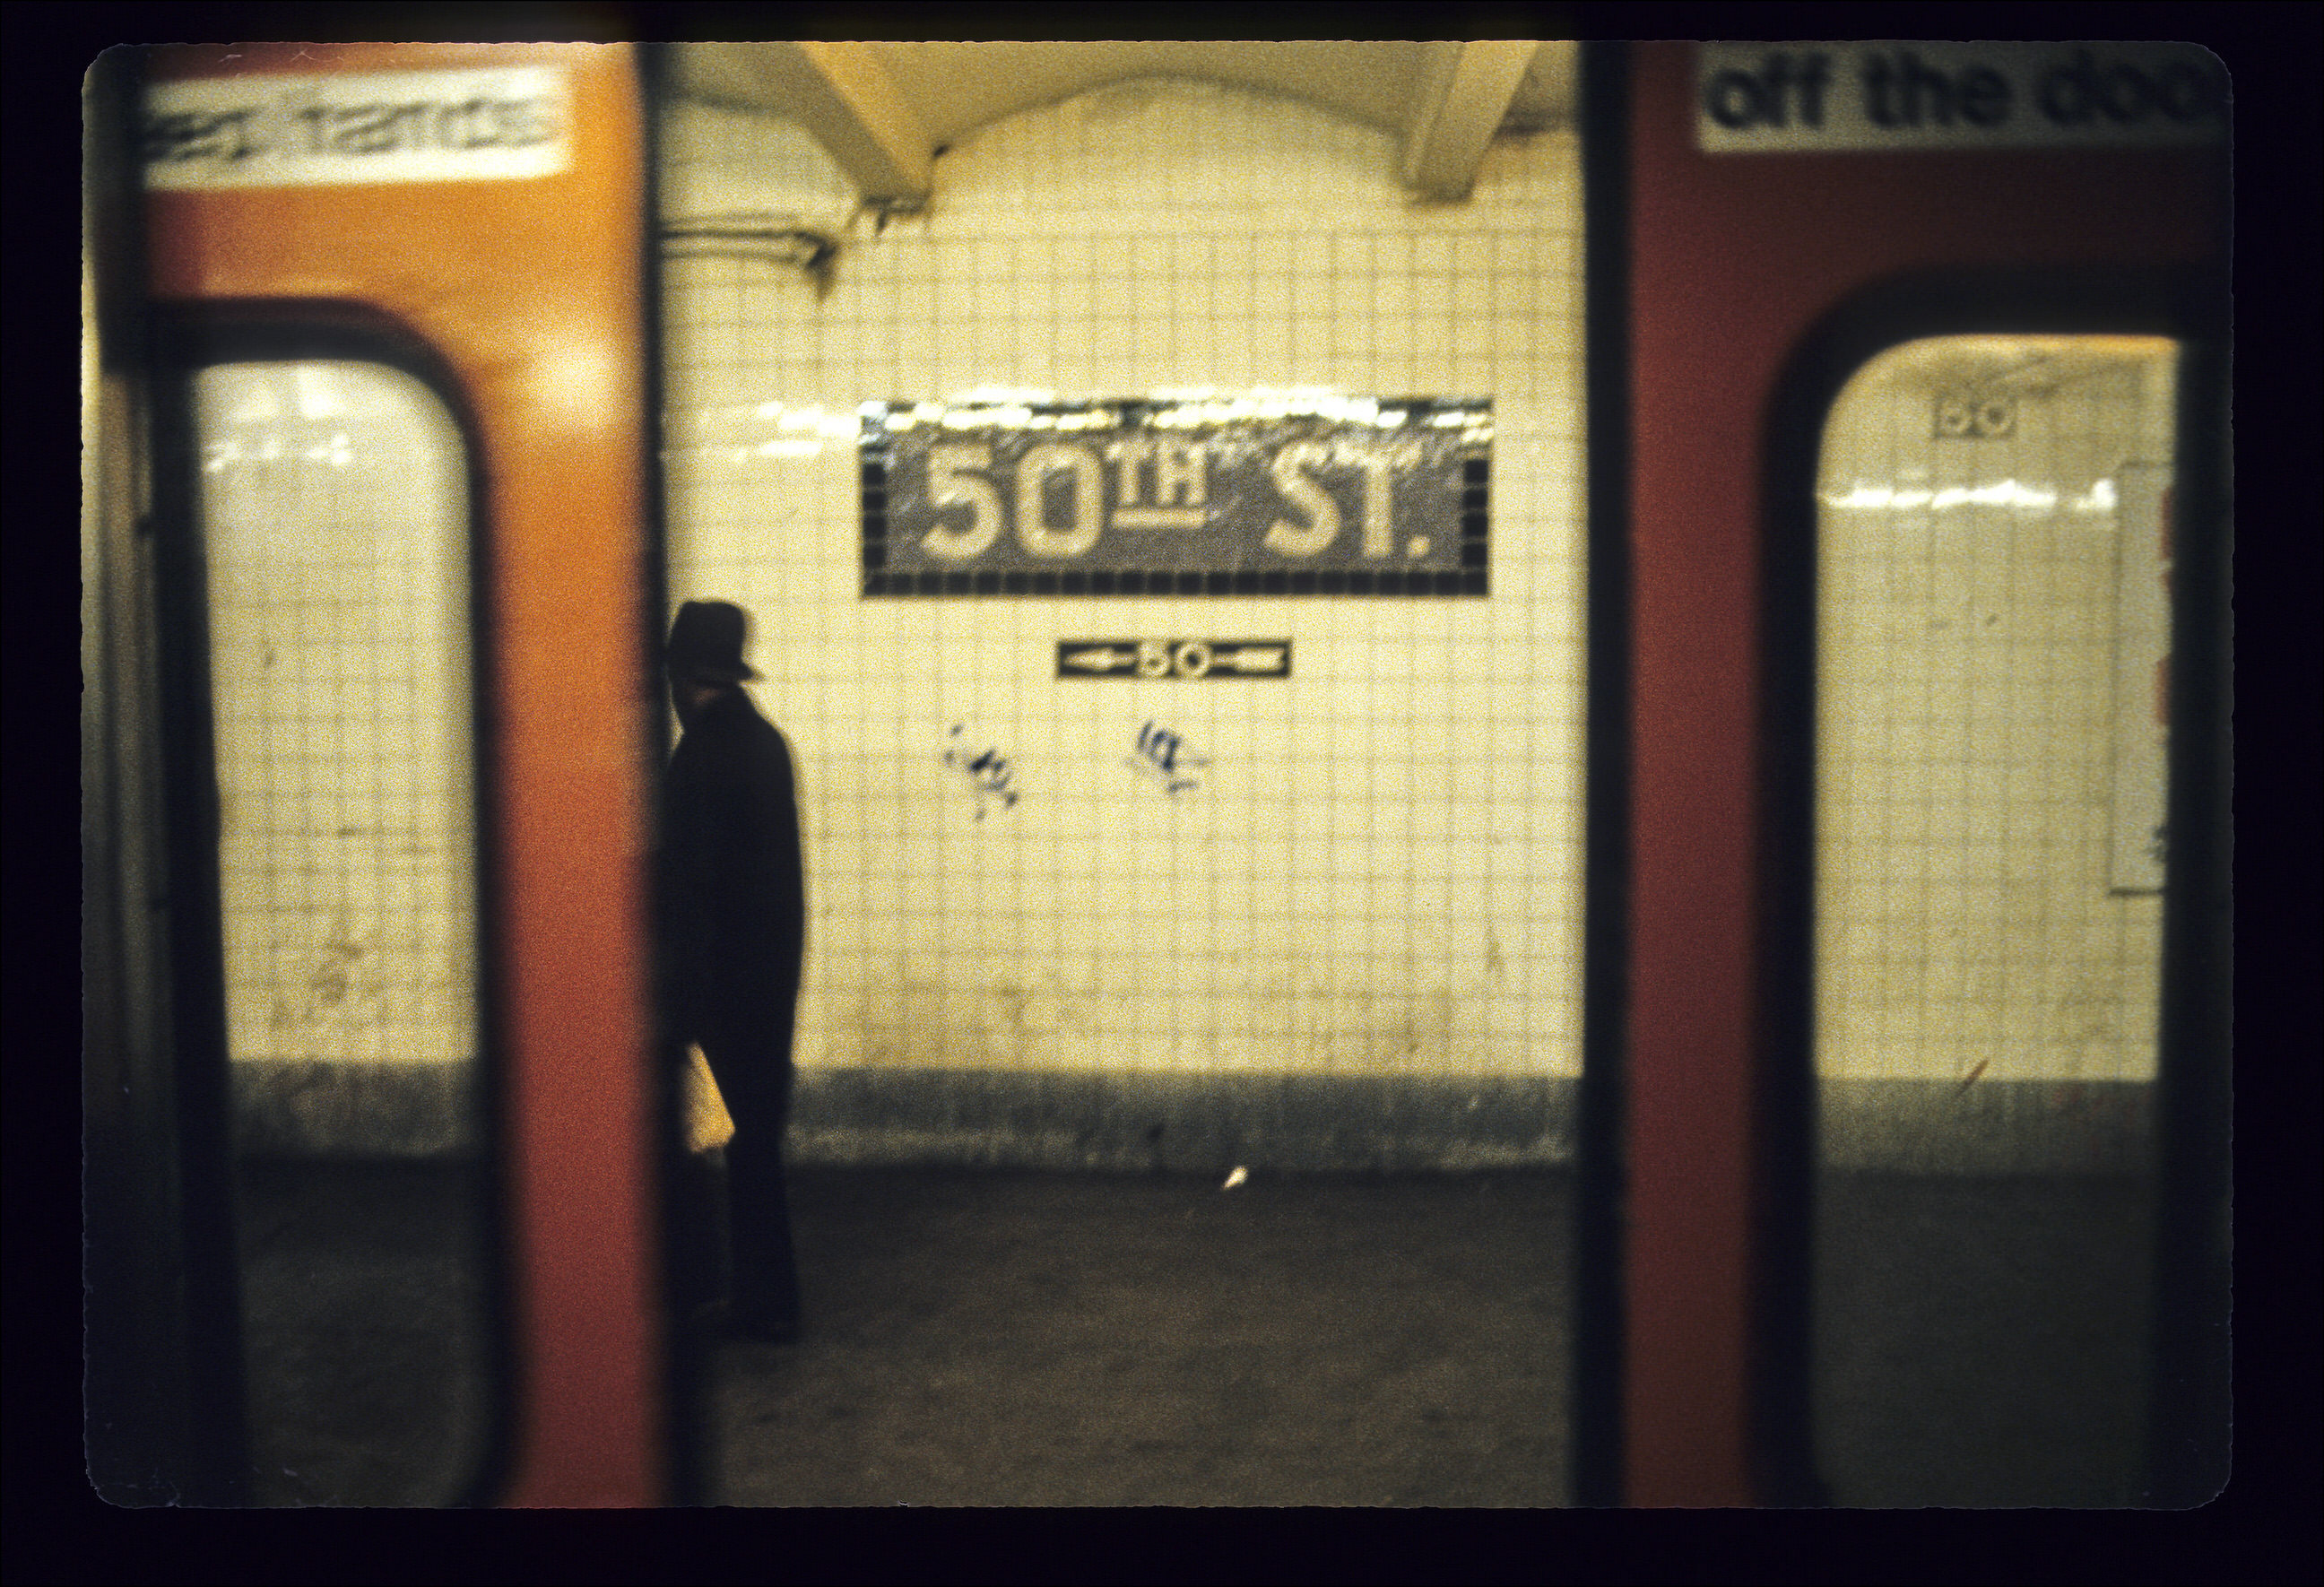 Hell on Wheels, Subway New York, 1977-1984 © by Willy Spiller